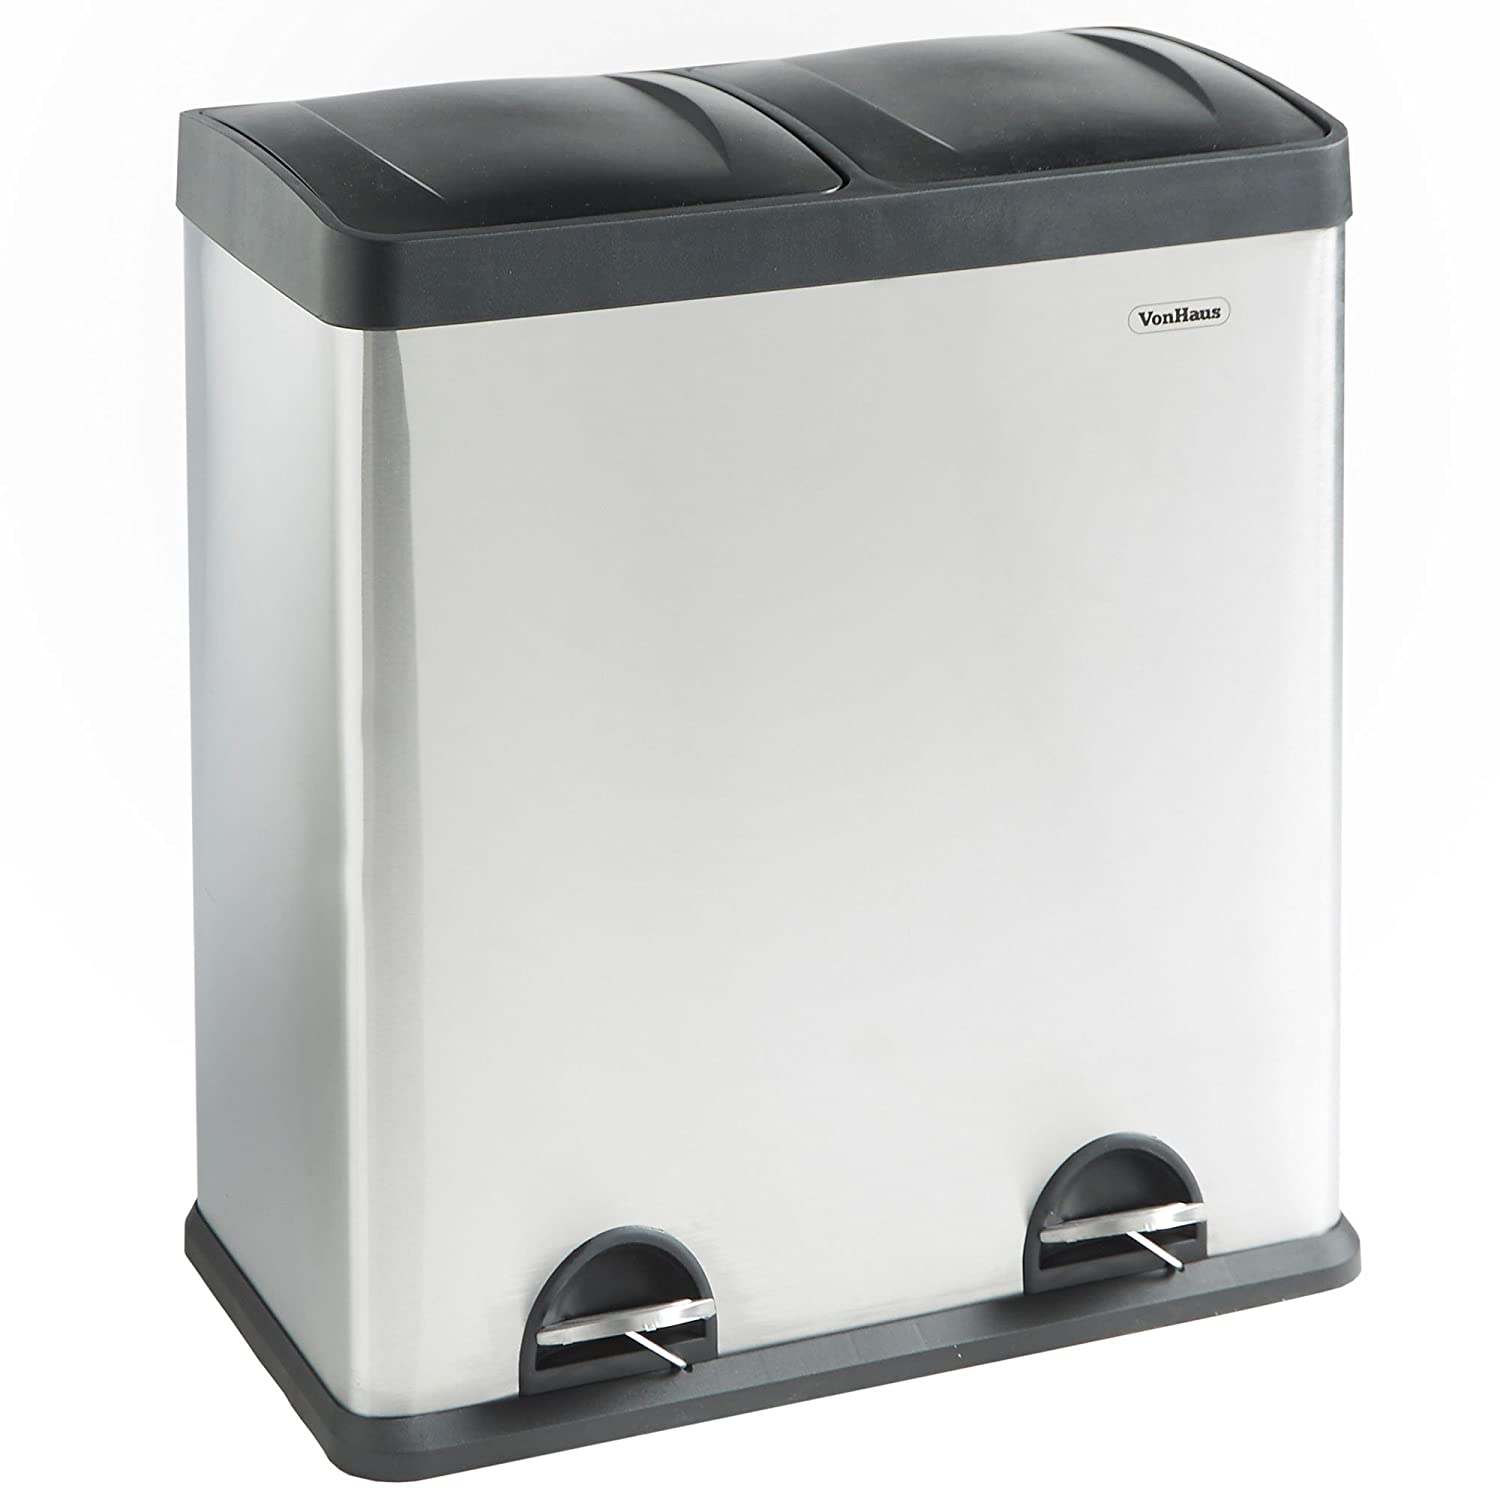 VonHaus Recycling Bin with Lids for Kitchens | 60 Litre Capacity | 2 ...